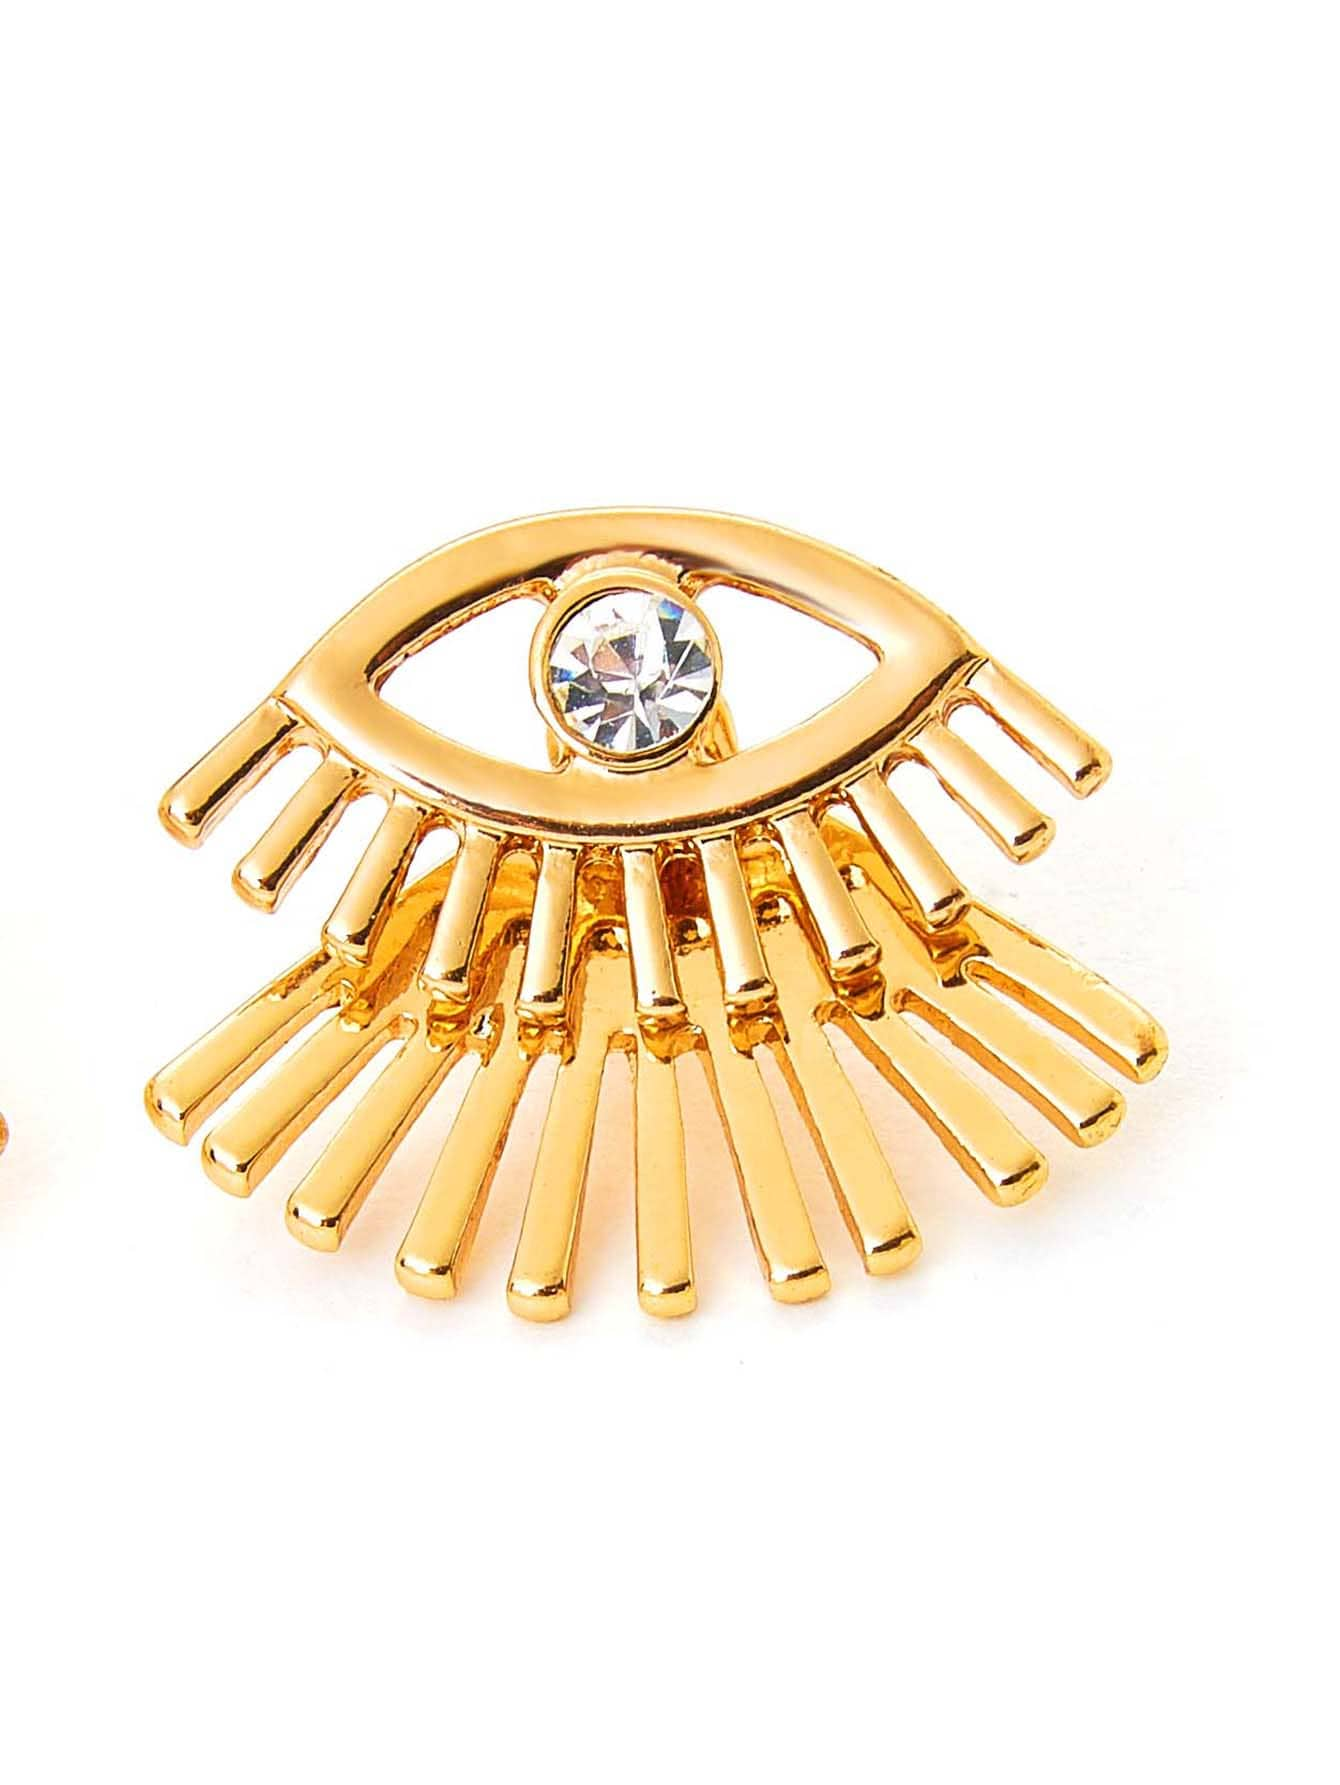 Eyelashes Stud Earrings With Rhinestone